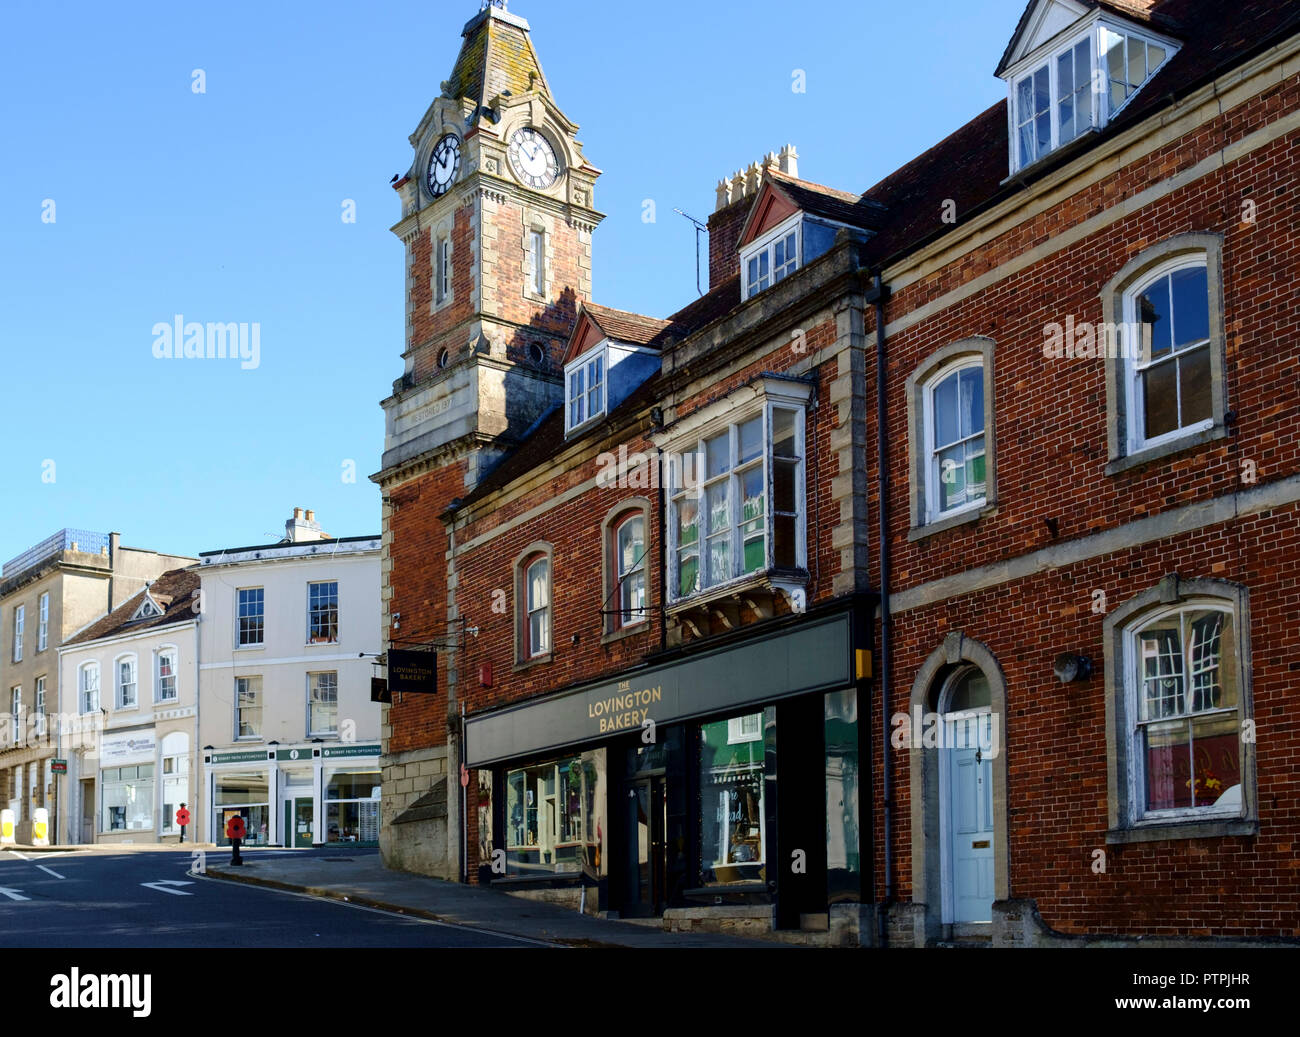 Wincanton, a small town in South Somerset England UK - Stock Image